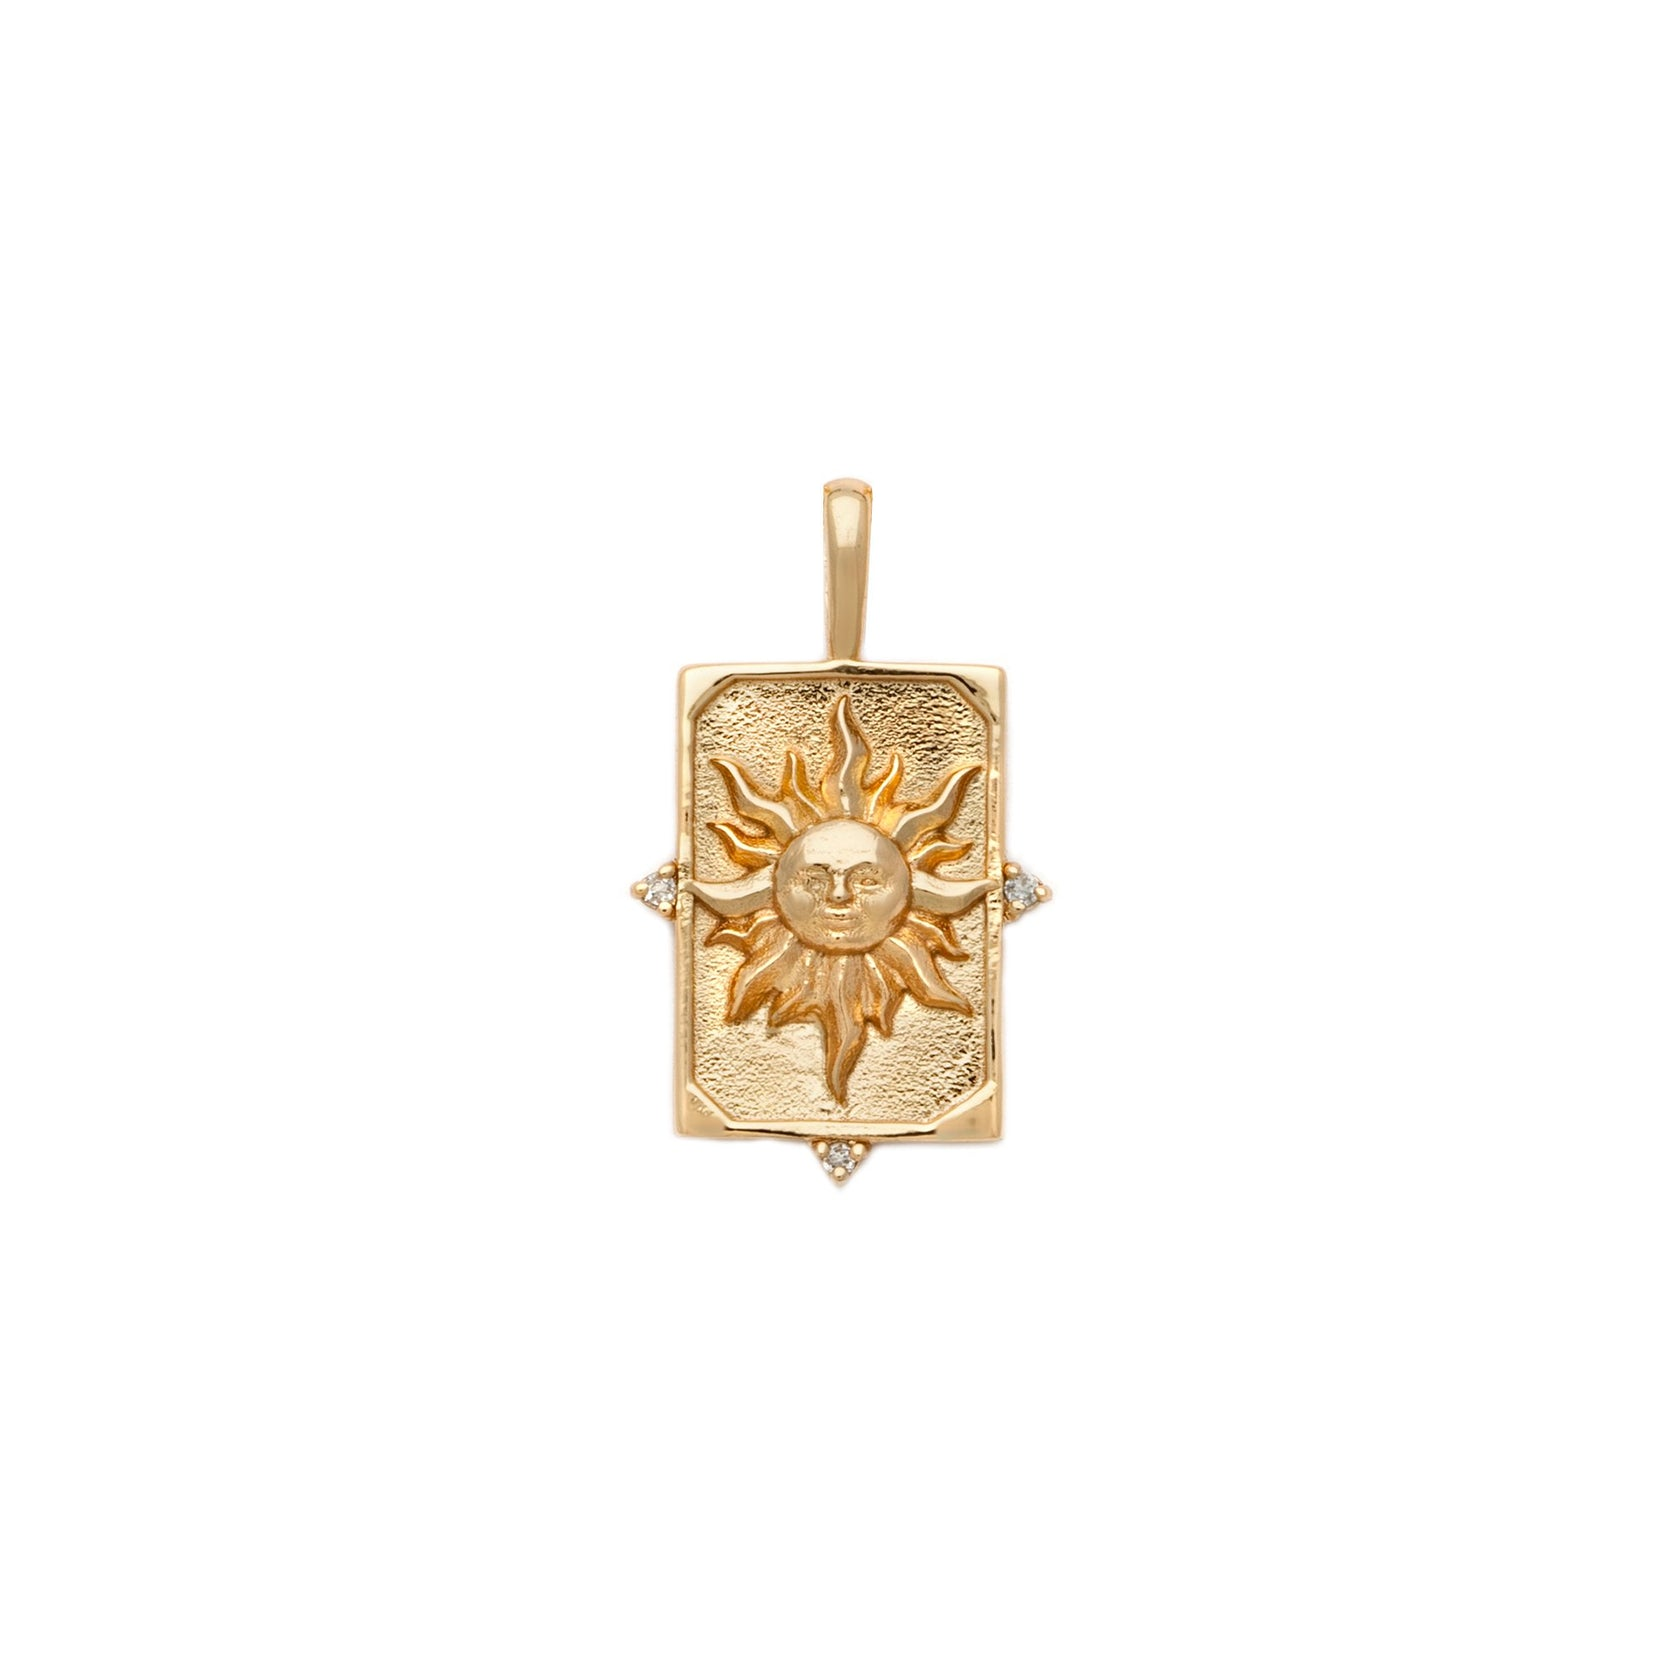 The Sun Tarot Pendant - Gold Vermeil